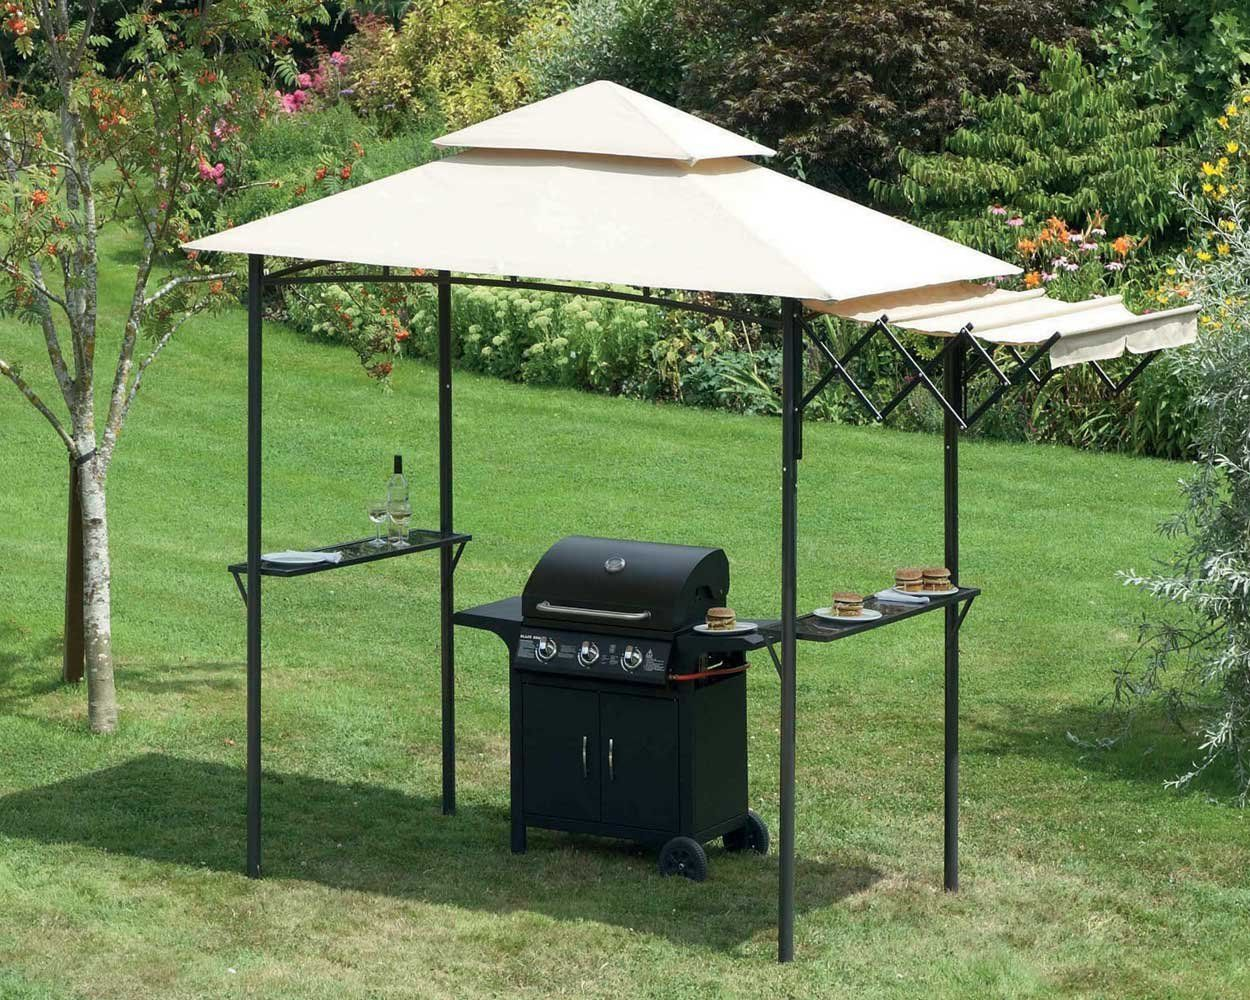 gazebo outdoor stunning design grill graded patio inspiring square awning simple walmart bbq canopy